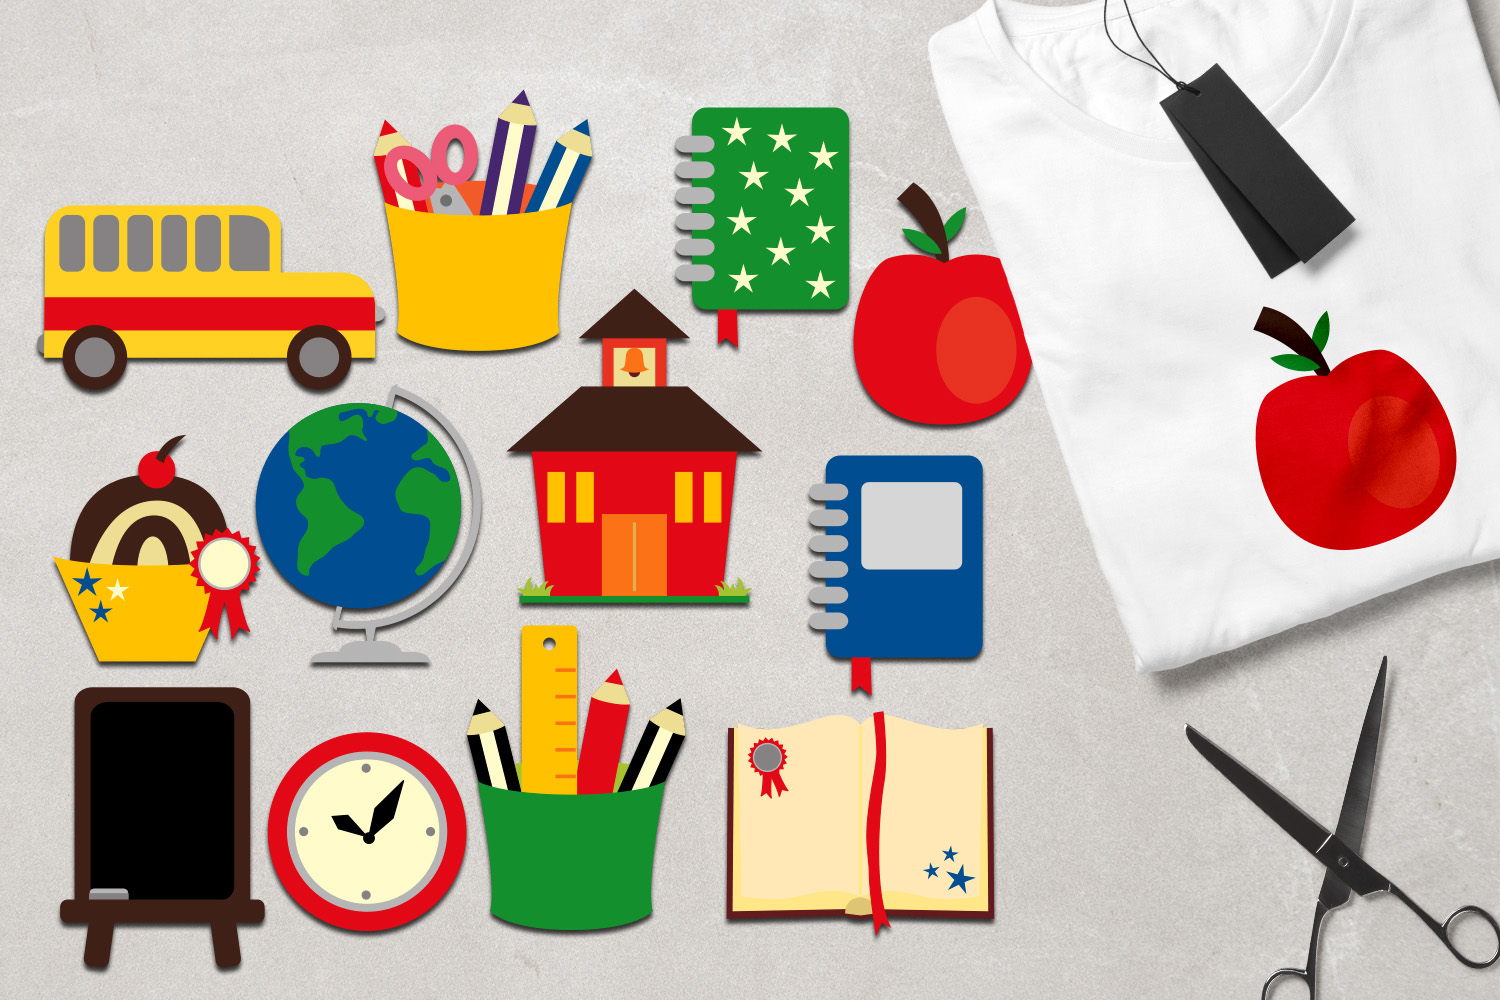 Back to school clipart graphic illustration, school supplies.